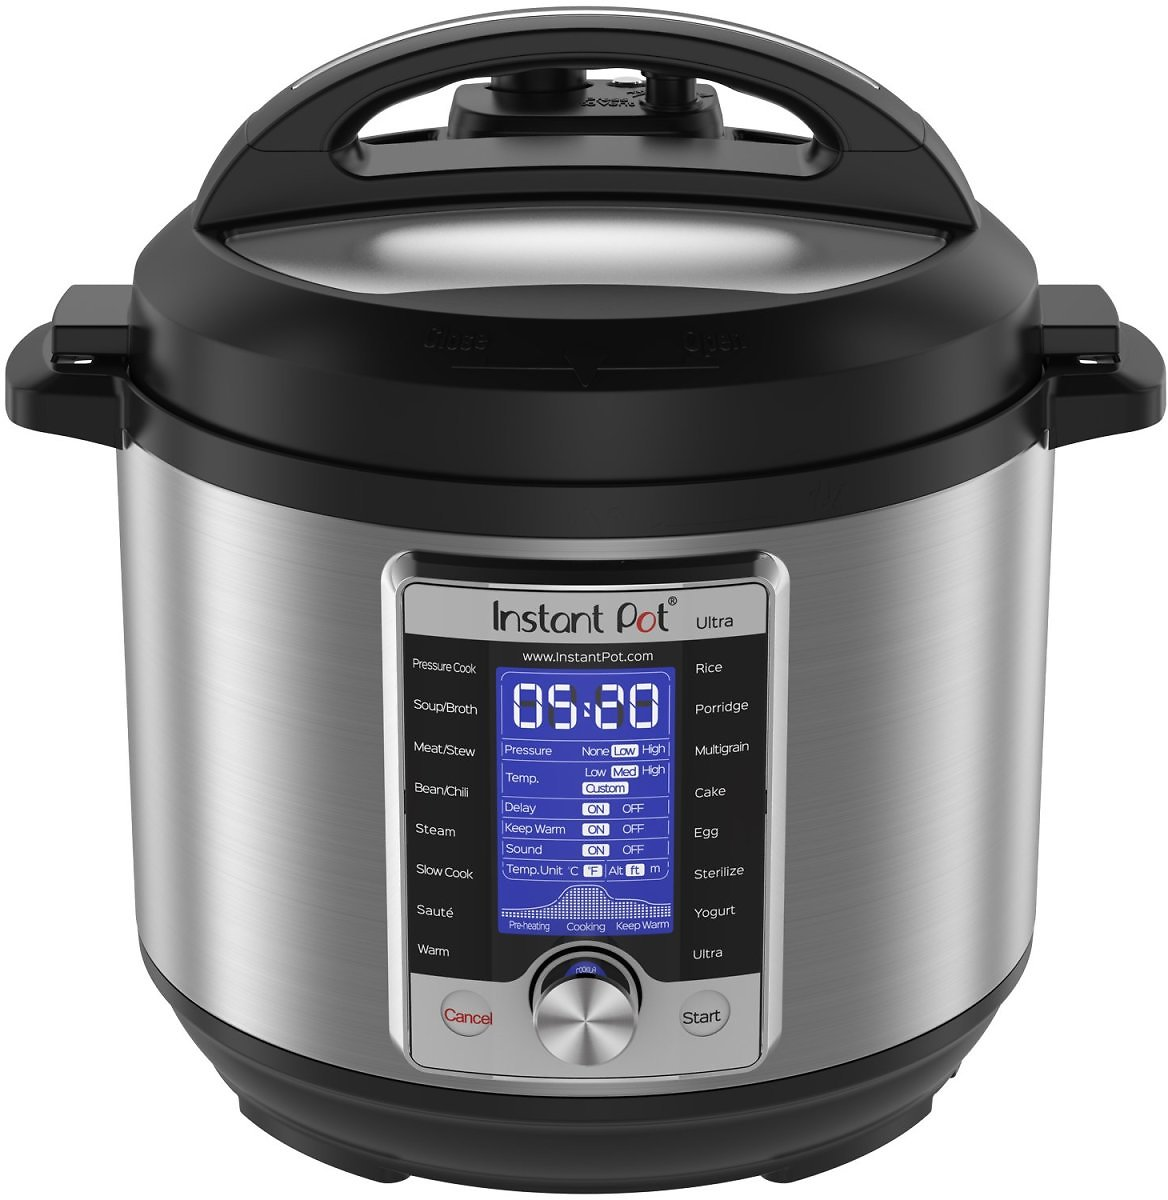 Instant Pot Ultra 6 Qt 10-in-1 Multi-Use Pressure Cooker